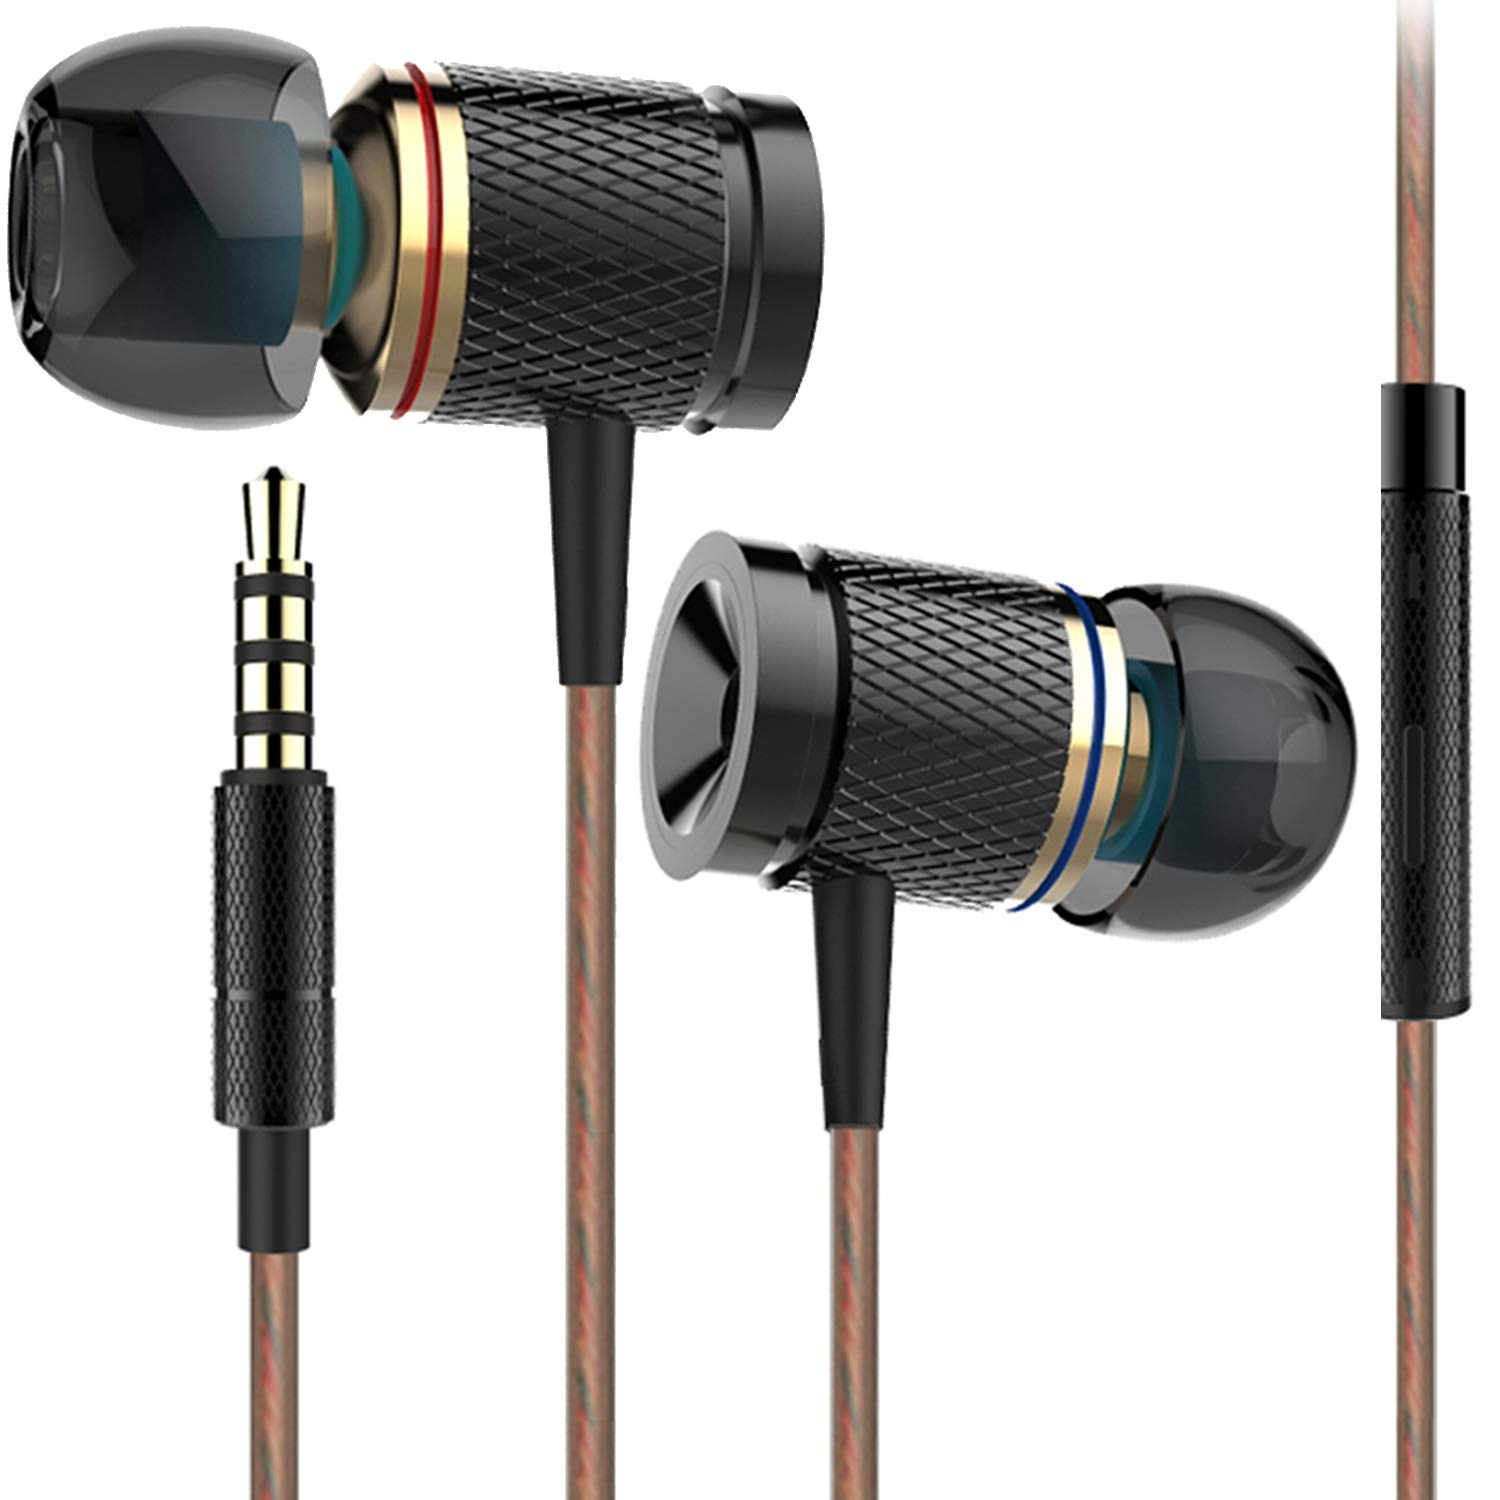 Earphones Headphones Ofuca X53 Noise Isolating in-Ear Earbuds with Pure Sound and Rich Bass Compatible with Smartphone, MP3 MP4 Player Tablet and All 3.5mm Audio Device with Microphone